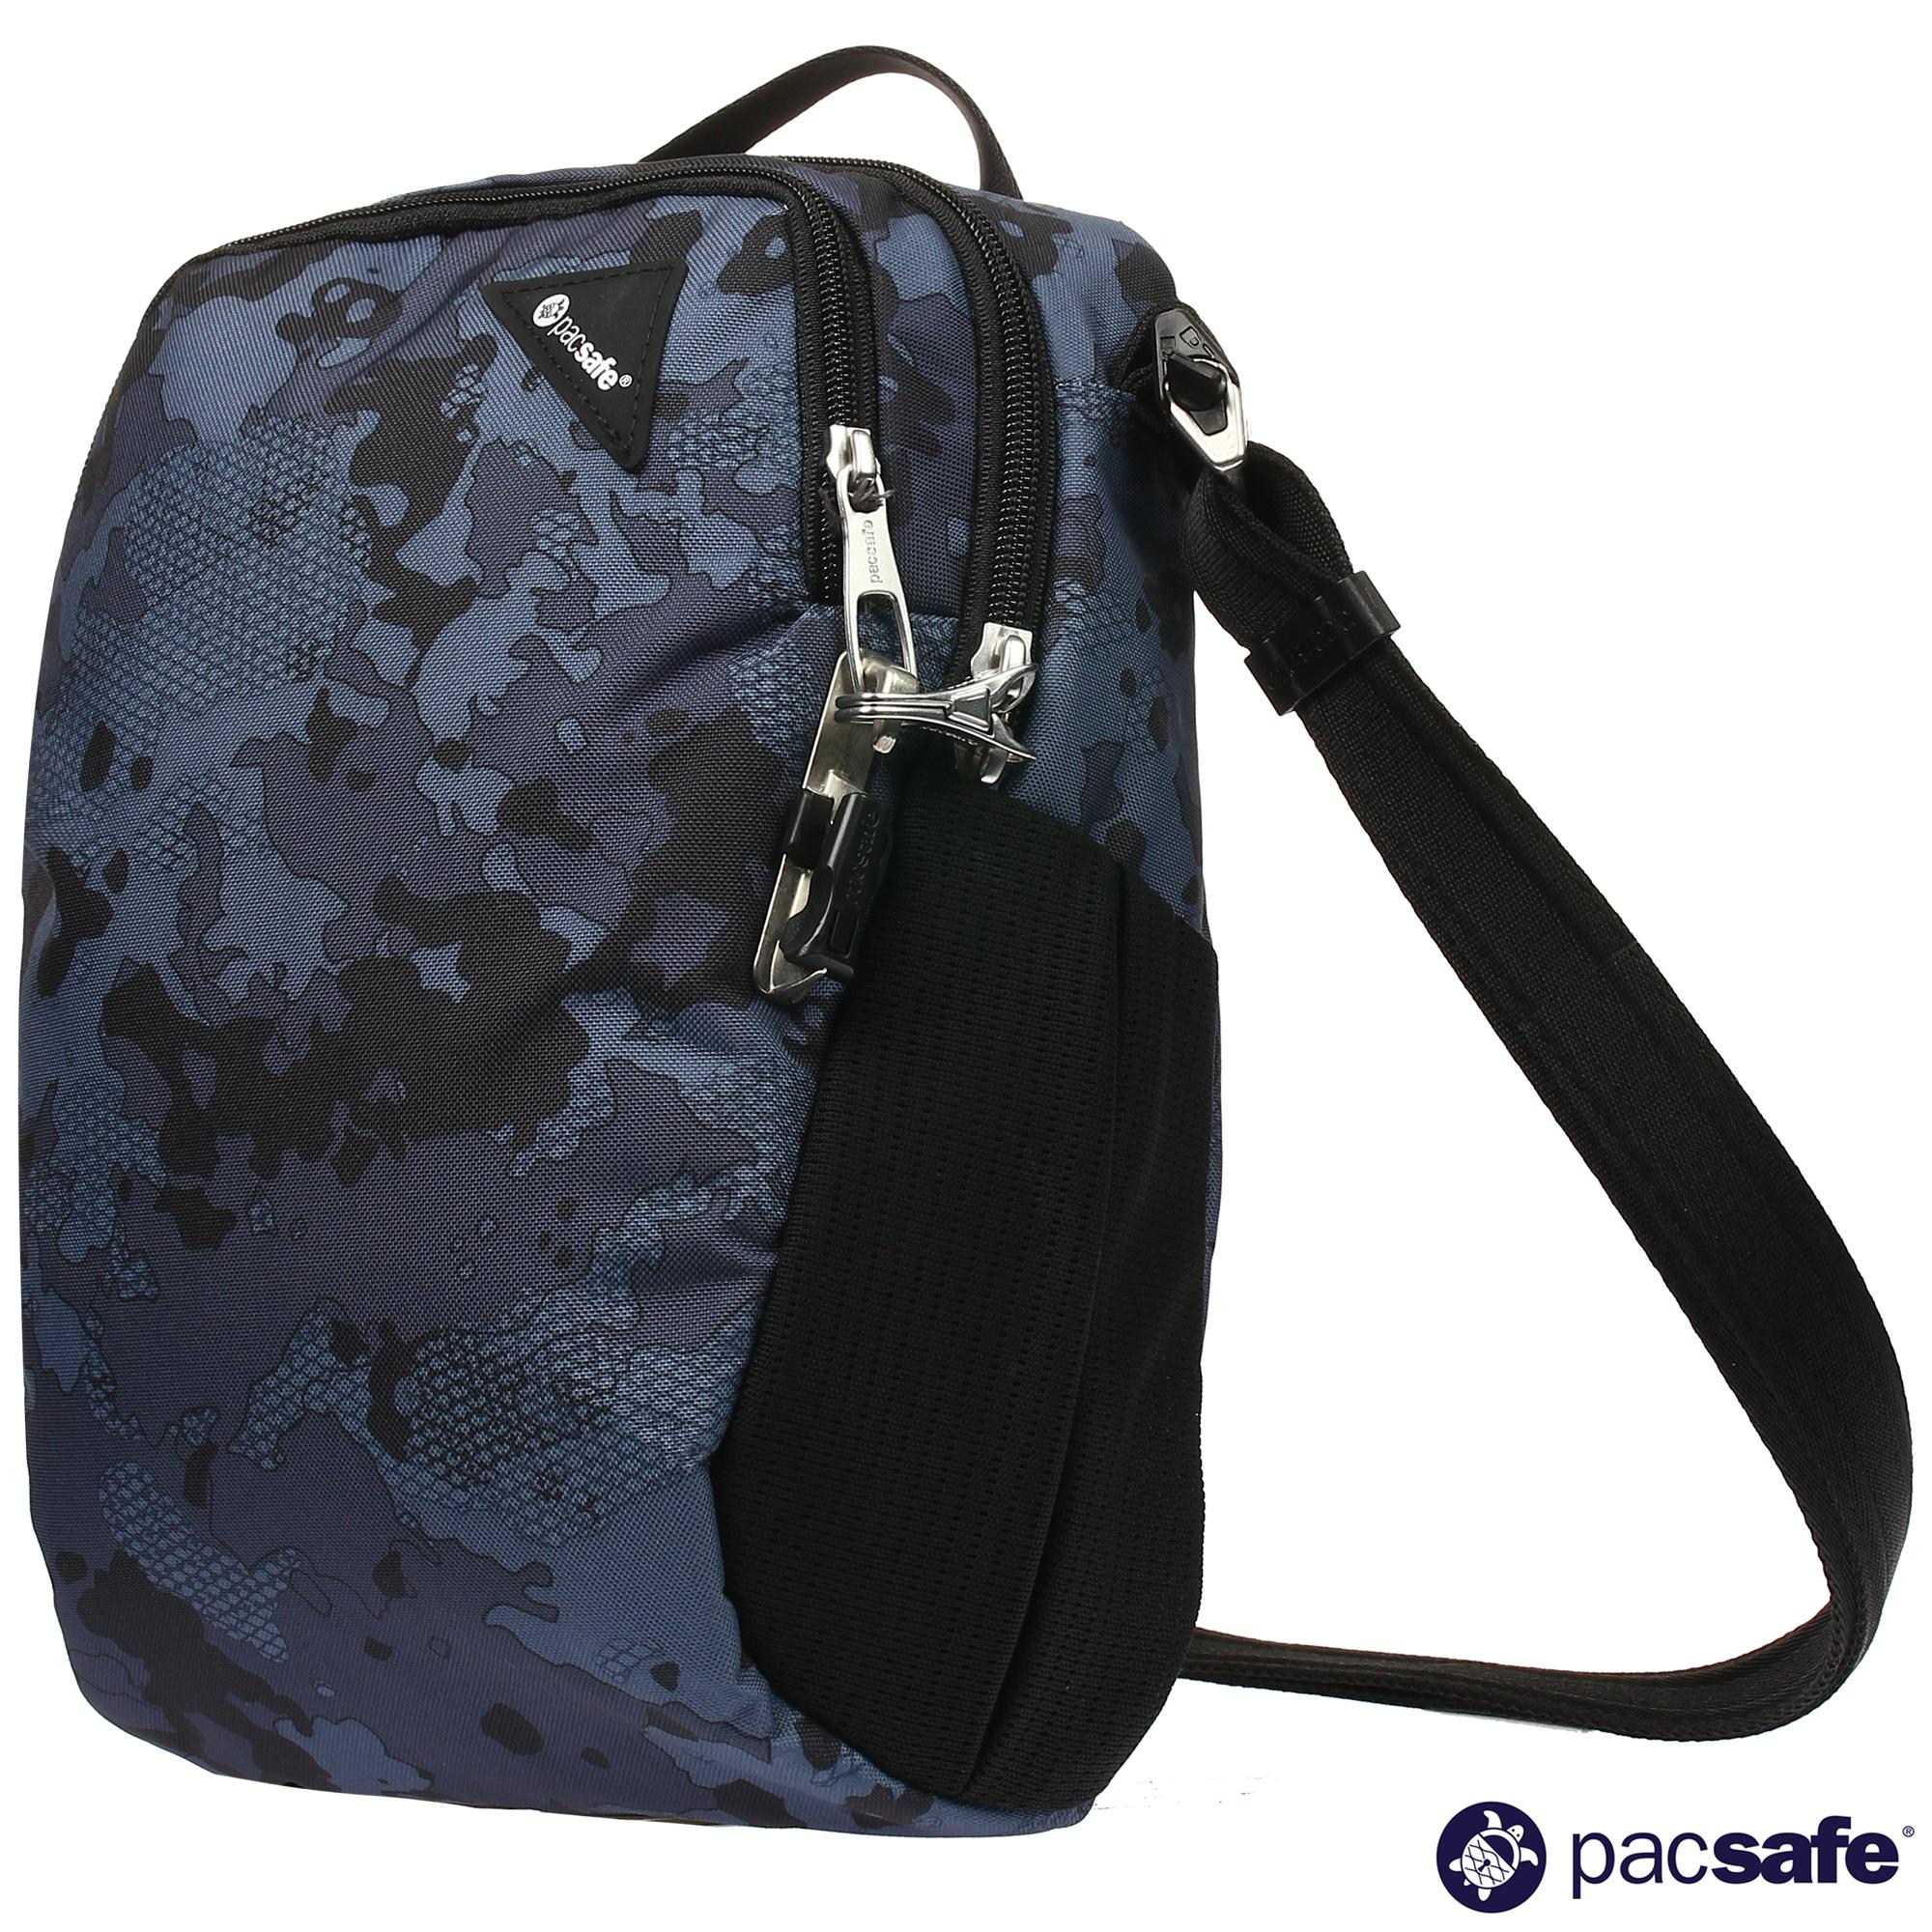 Pacsafe Philippines  Pacsafe price list - Pacsafe Bags 69729f6138195